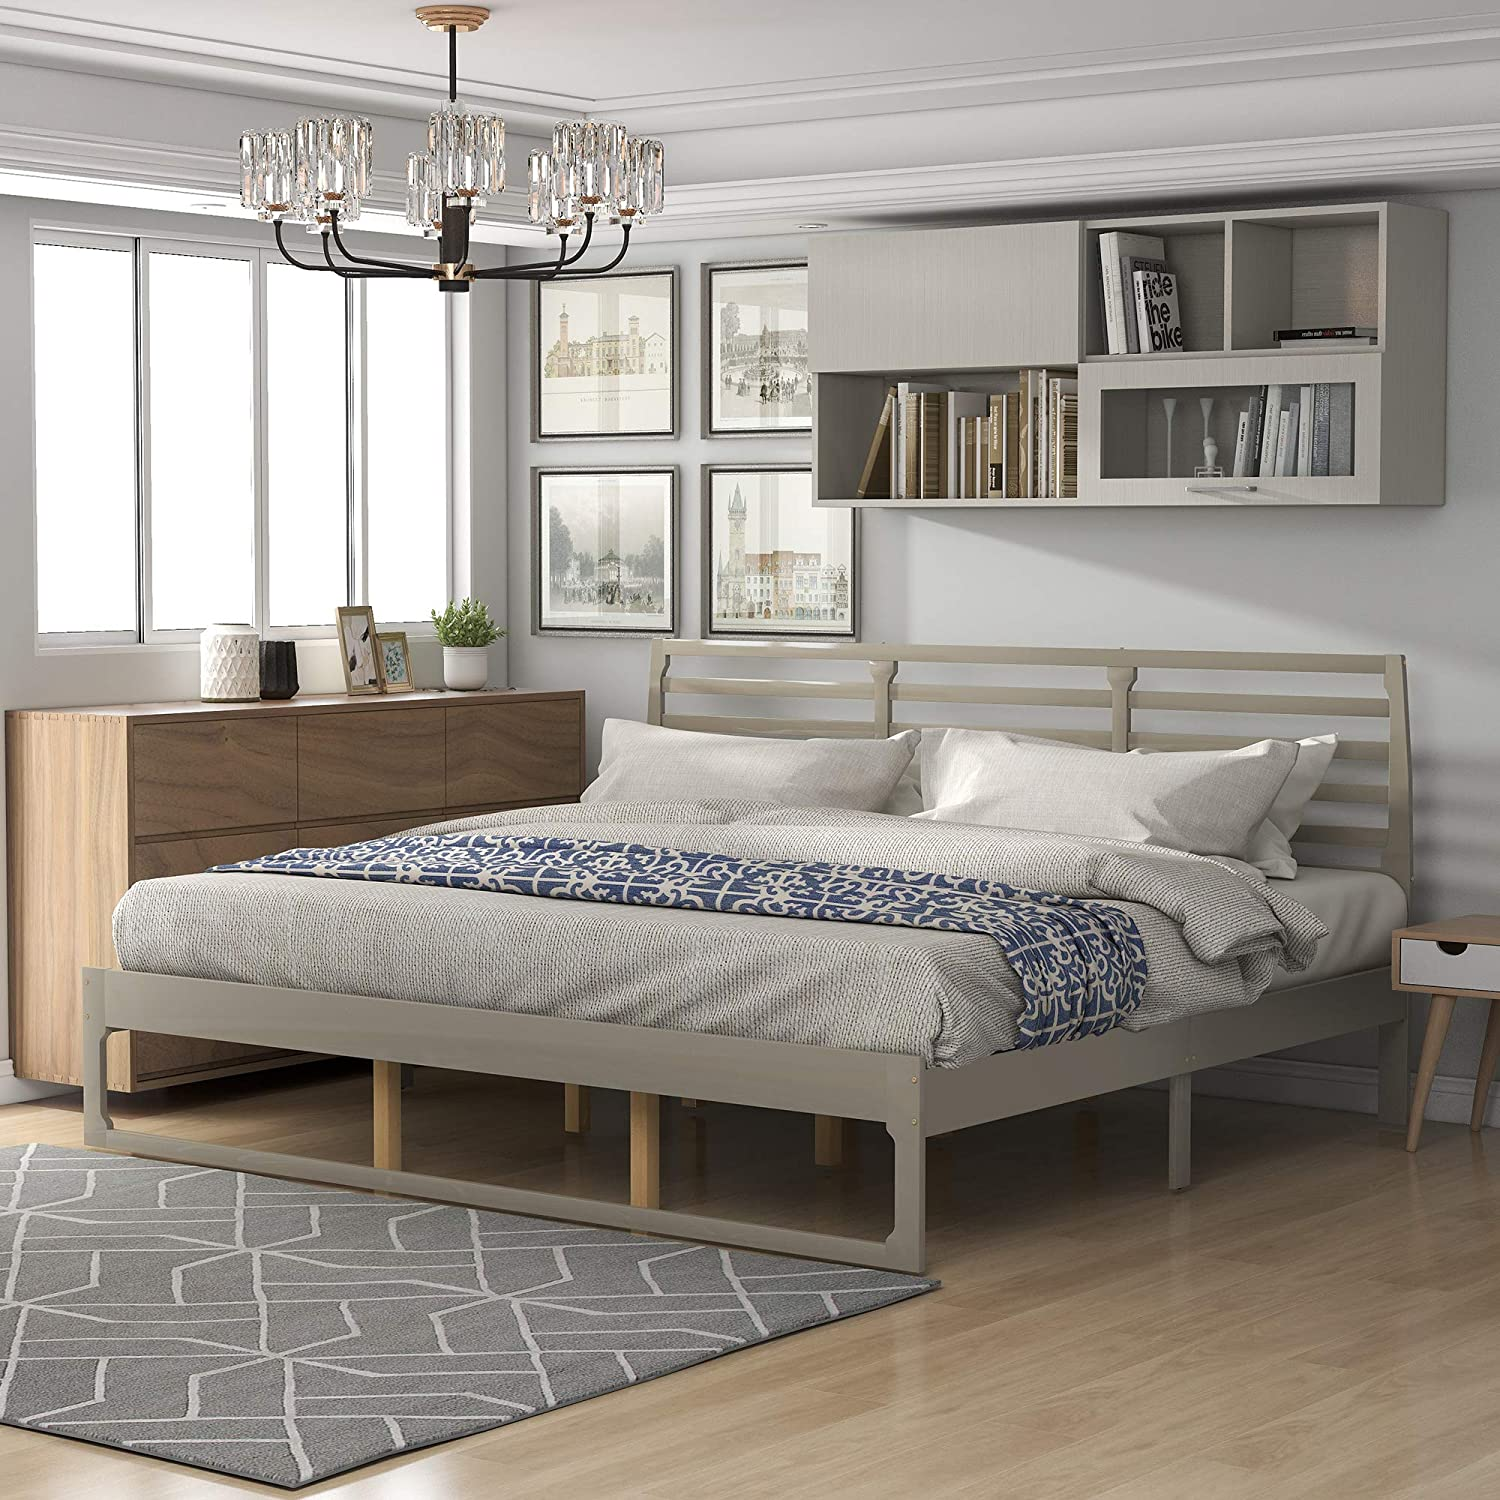 Wood Platform Bed Frame with No Tucson Mall Support Slat Special Campaign Box Headboard